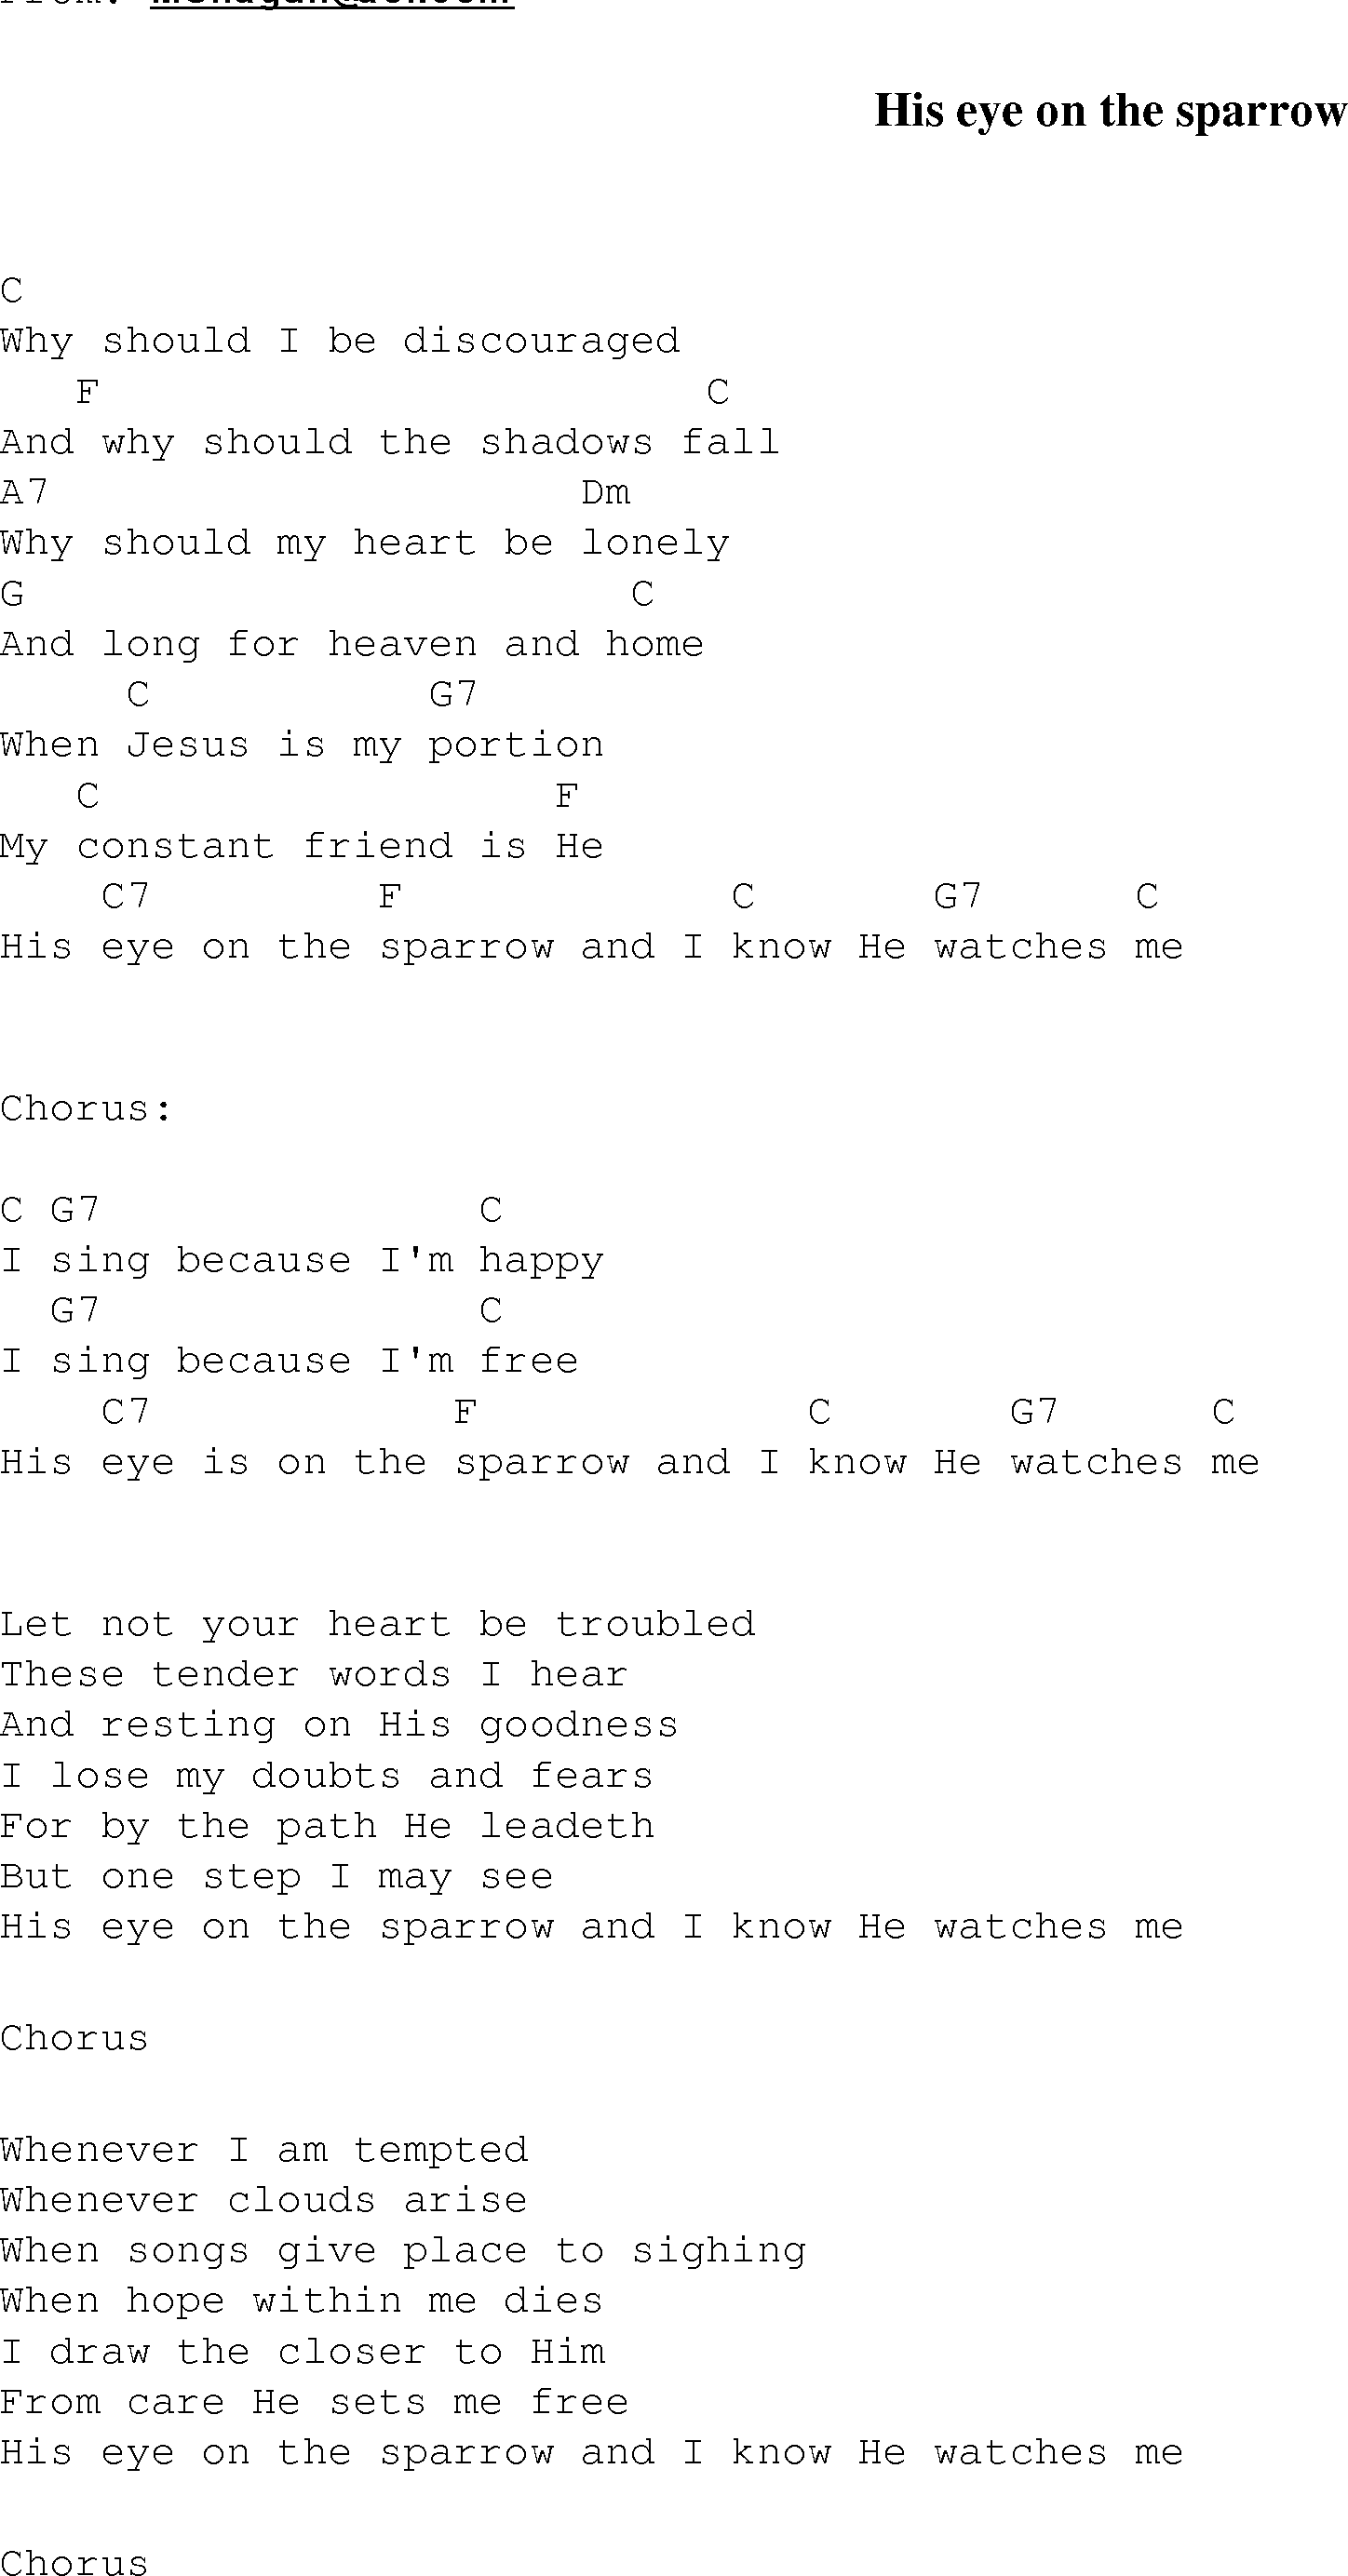 His eye on the sparrow christian gospel song lyrics and chords gospel song hiseyeisonthesparrow lyrics and chords hexwebz Gallery